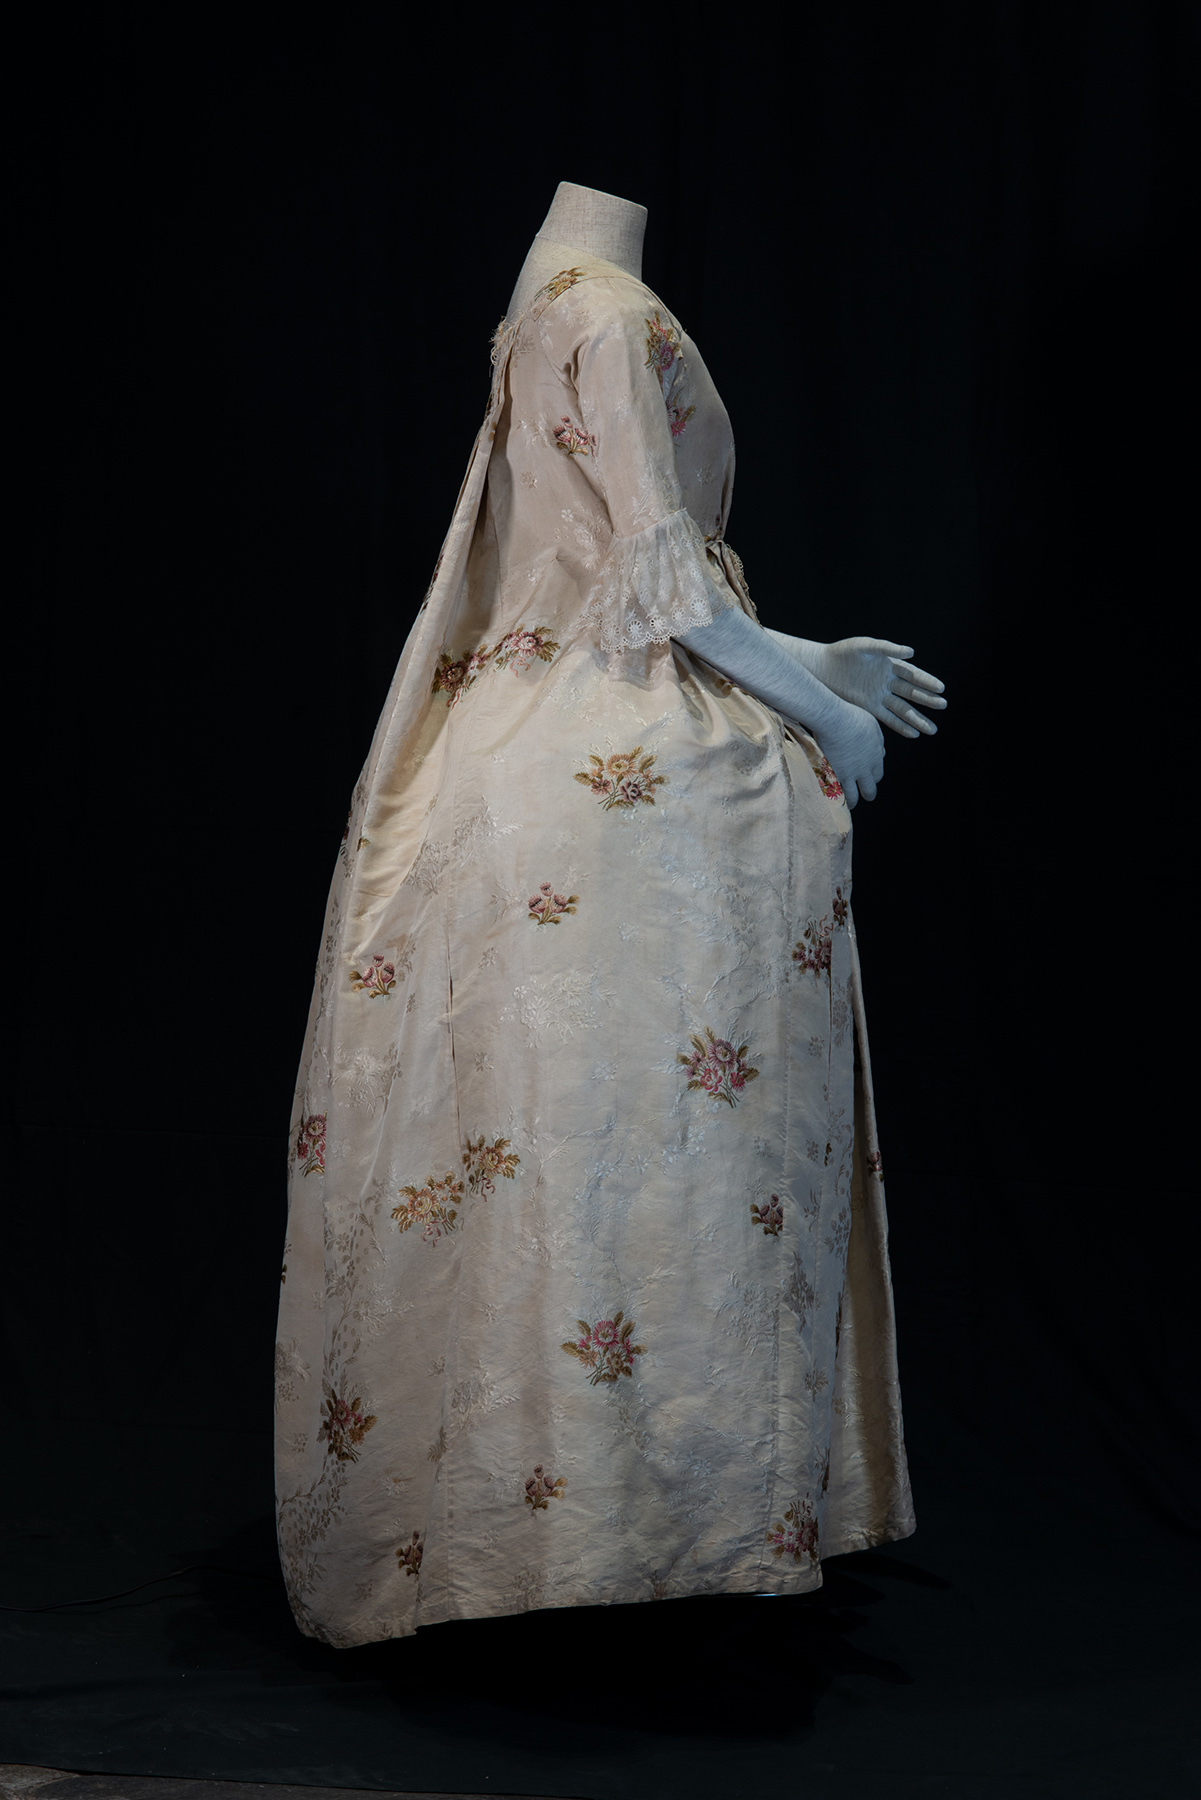 Detail of the Dress